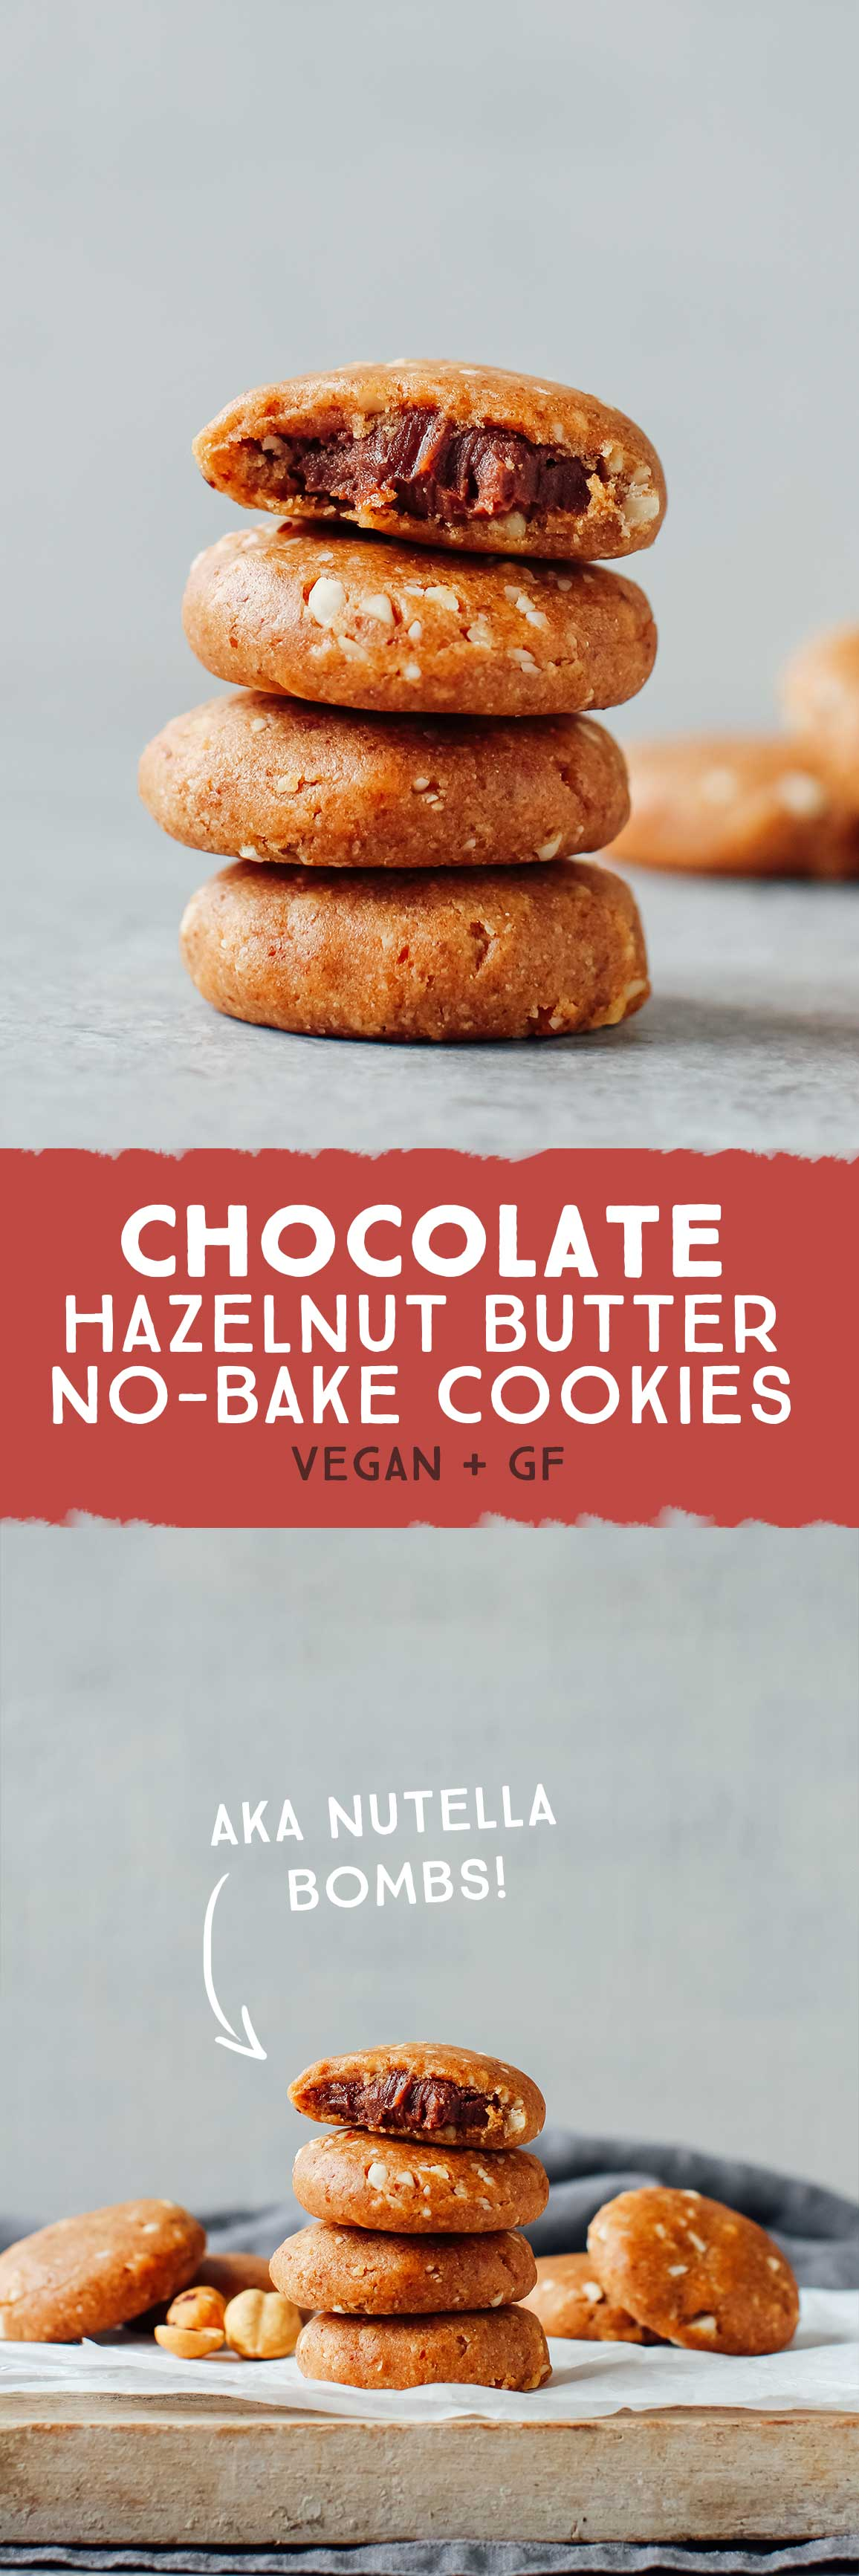 No-Bake Chocolate Hazelnut Butter Cookies (aka Nutella Bombs!)